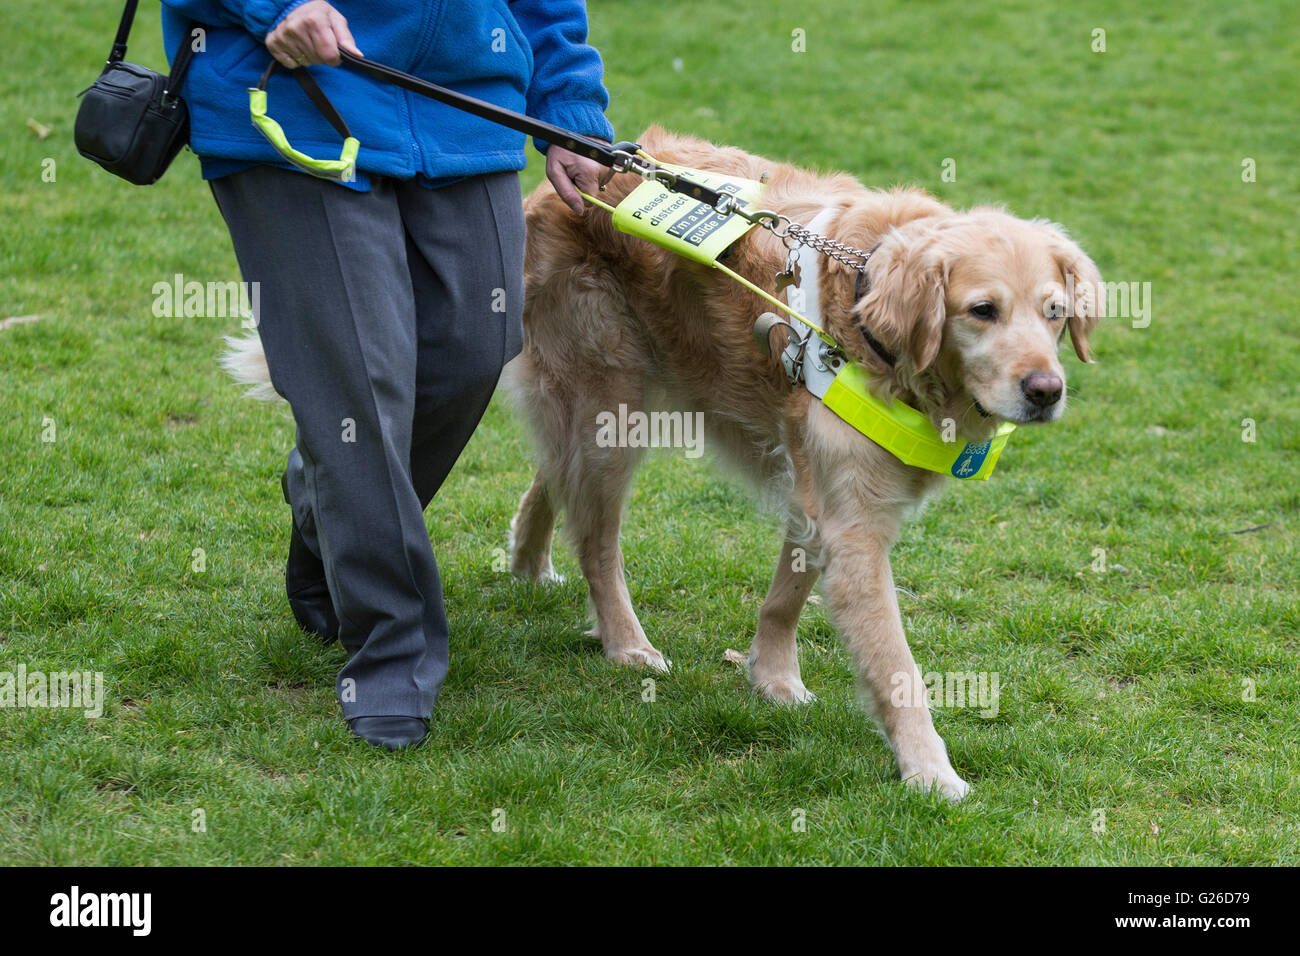 london uk 25 may 2016 100 guide dog owners with their guide dogs rh alamy com benefits of guide dog ownership guide for new dog owners